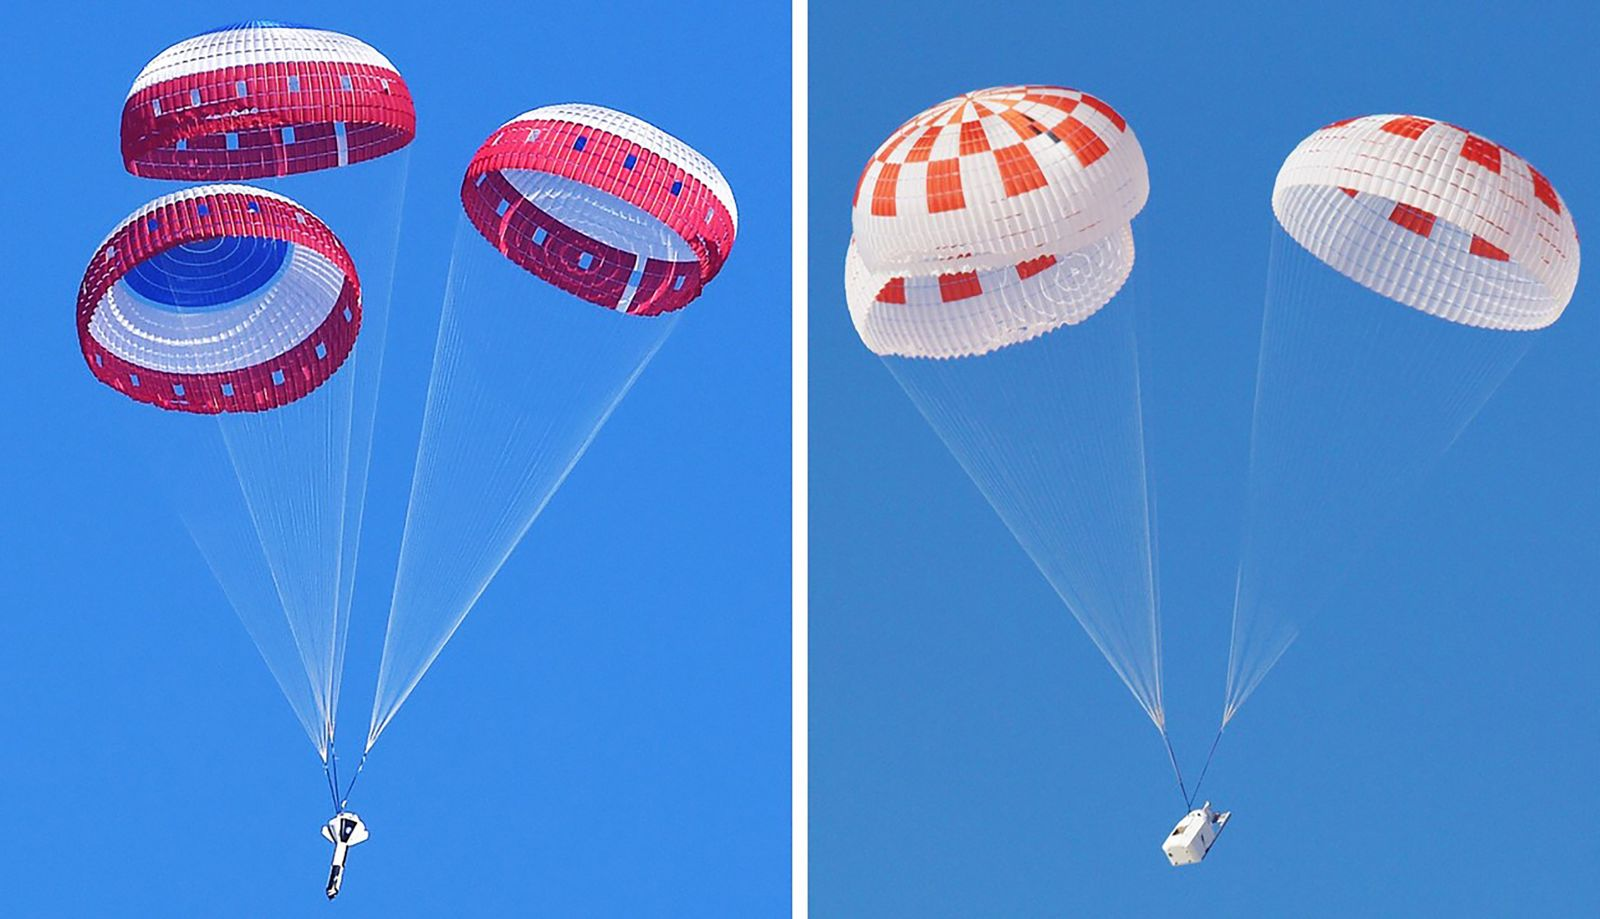 Left: Boeing performs the first in a series of parachute reliability tests for its Starliner spacecraft on Feb. 22, 2018. Photo Credit: NASA Right: SpaceX tests and off-nominal parachute deployment on March 4, 2018. Photo Credit: SpaceX